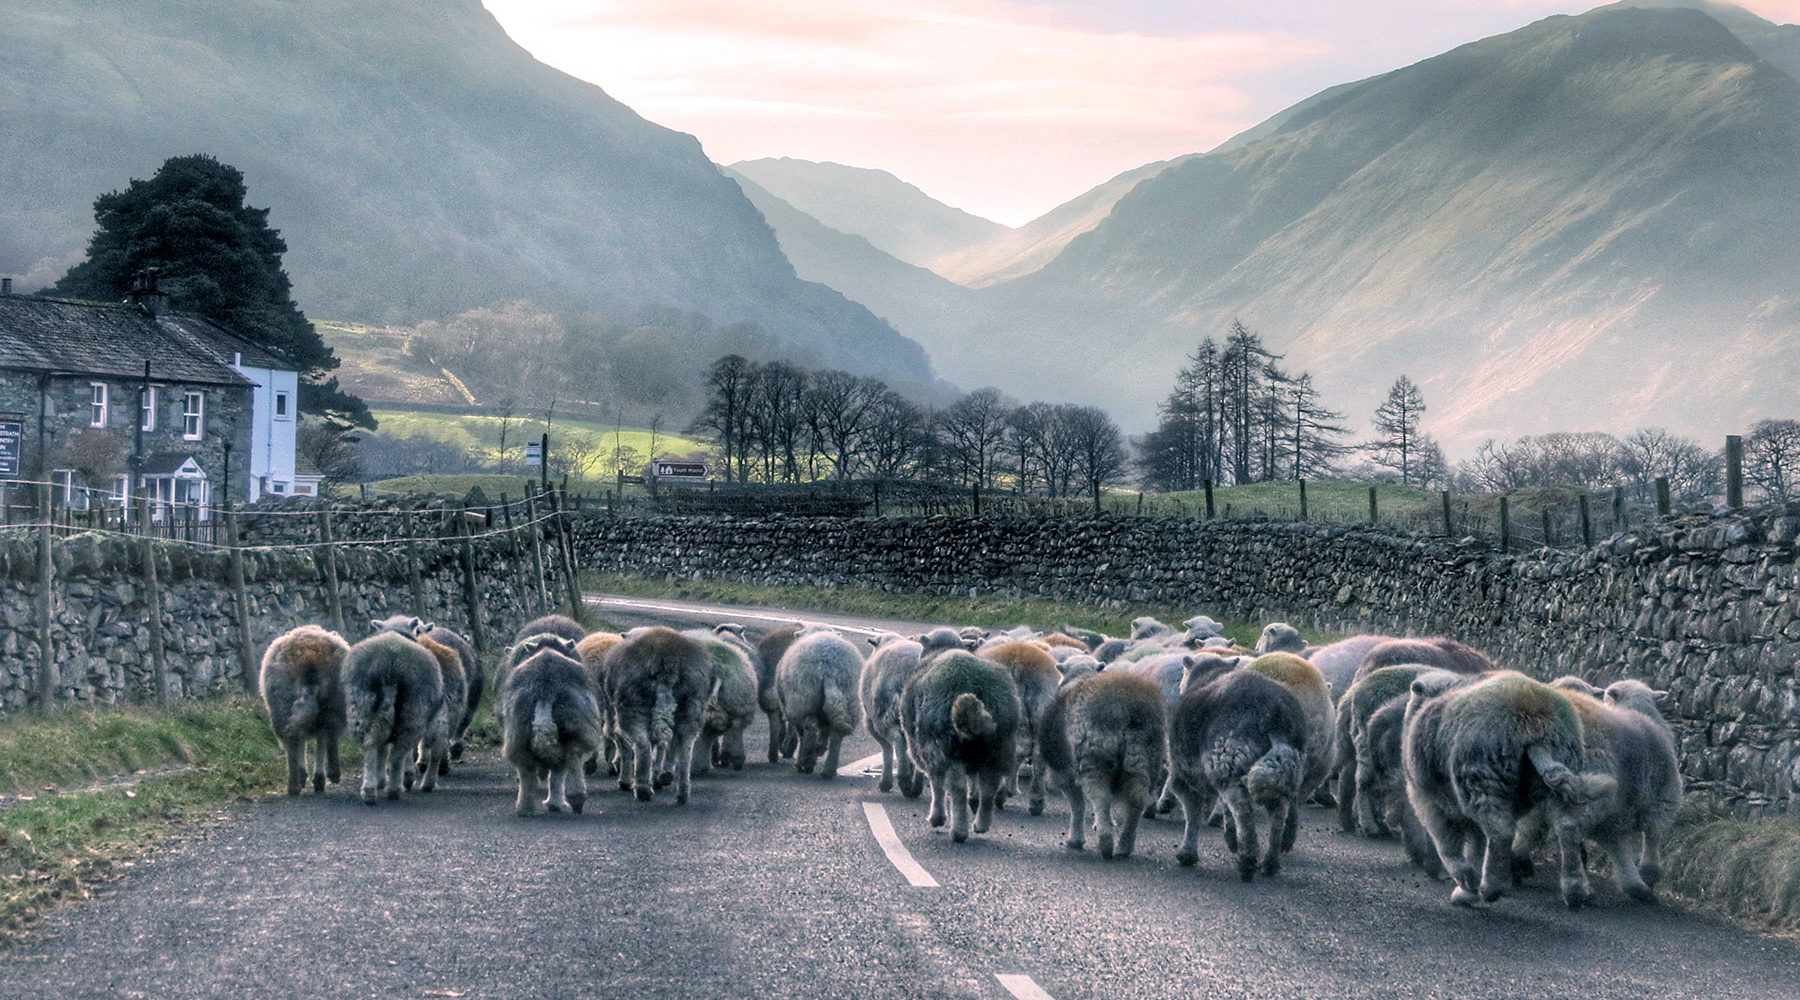 Leading Borrowdale Hotel Set In The Borrowdale Valley